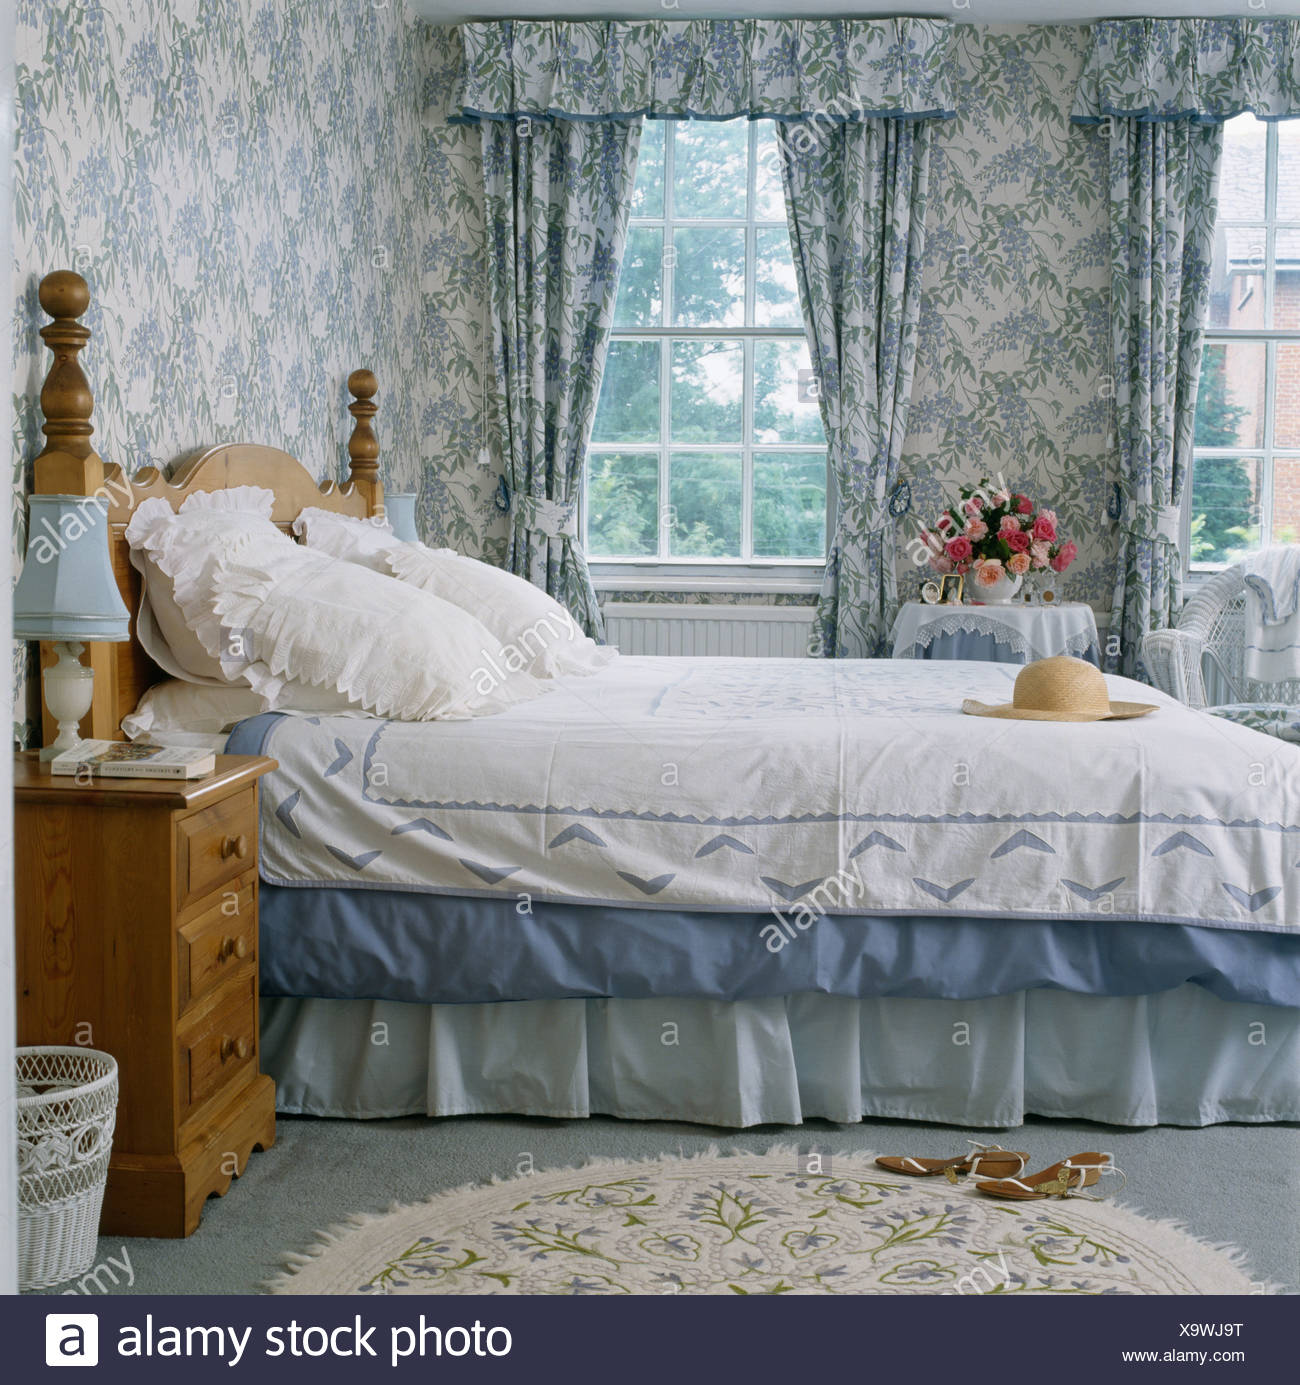 Interiors Bedrooms Traditional Wallpaper Stock Photos